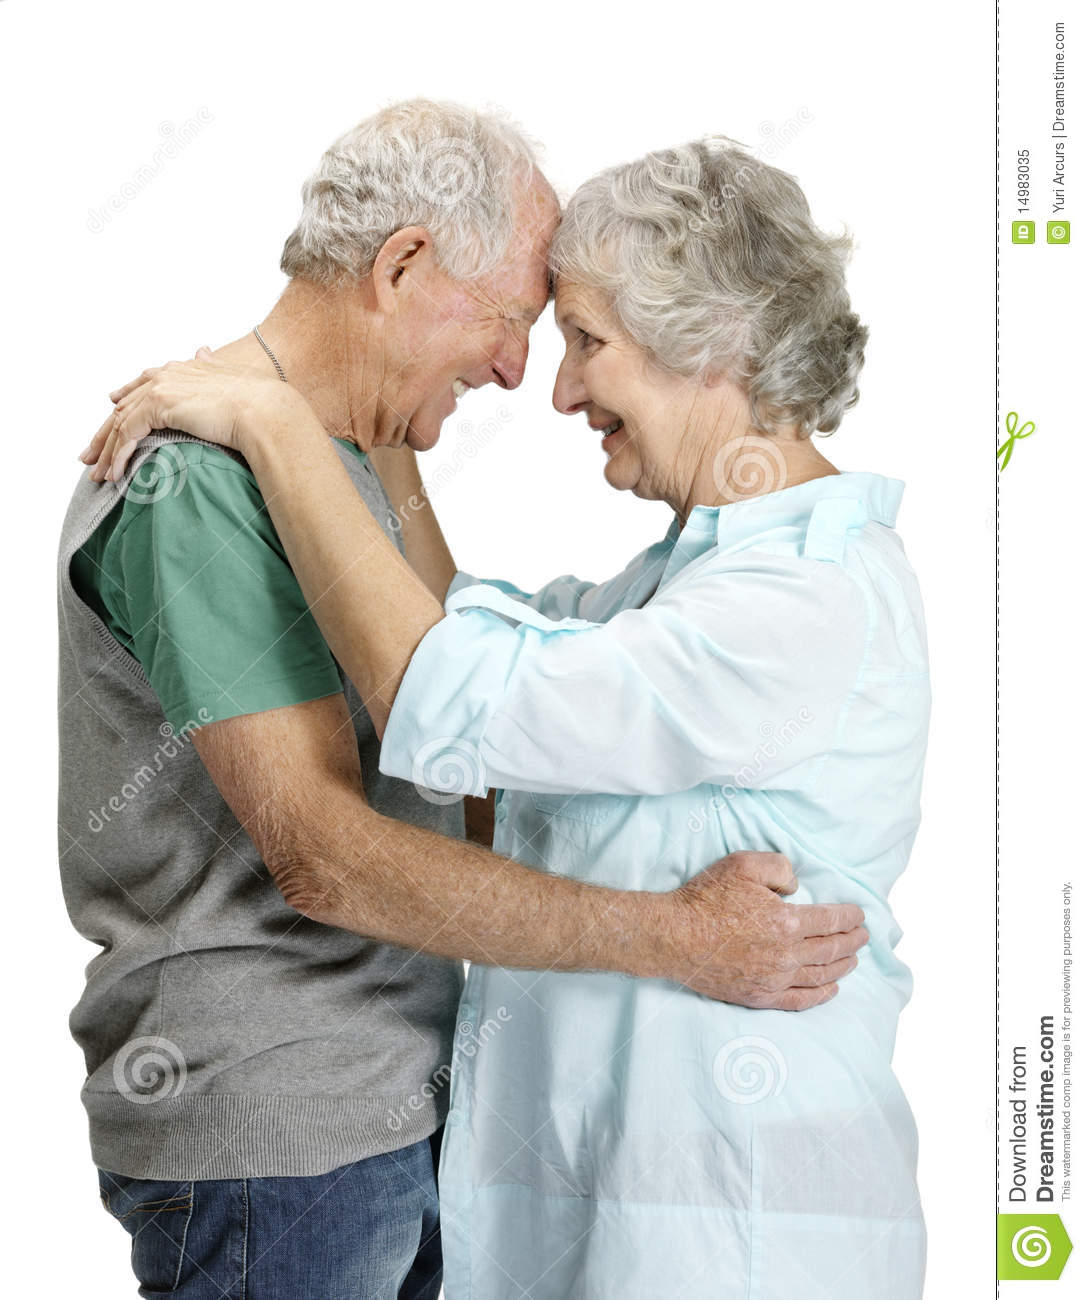 Couple At The Beach Stock Image Image Of Caucasian: Portrait Of Romantic Senior Couple In Love Stock Image